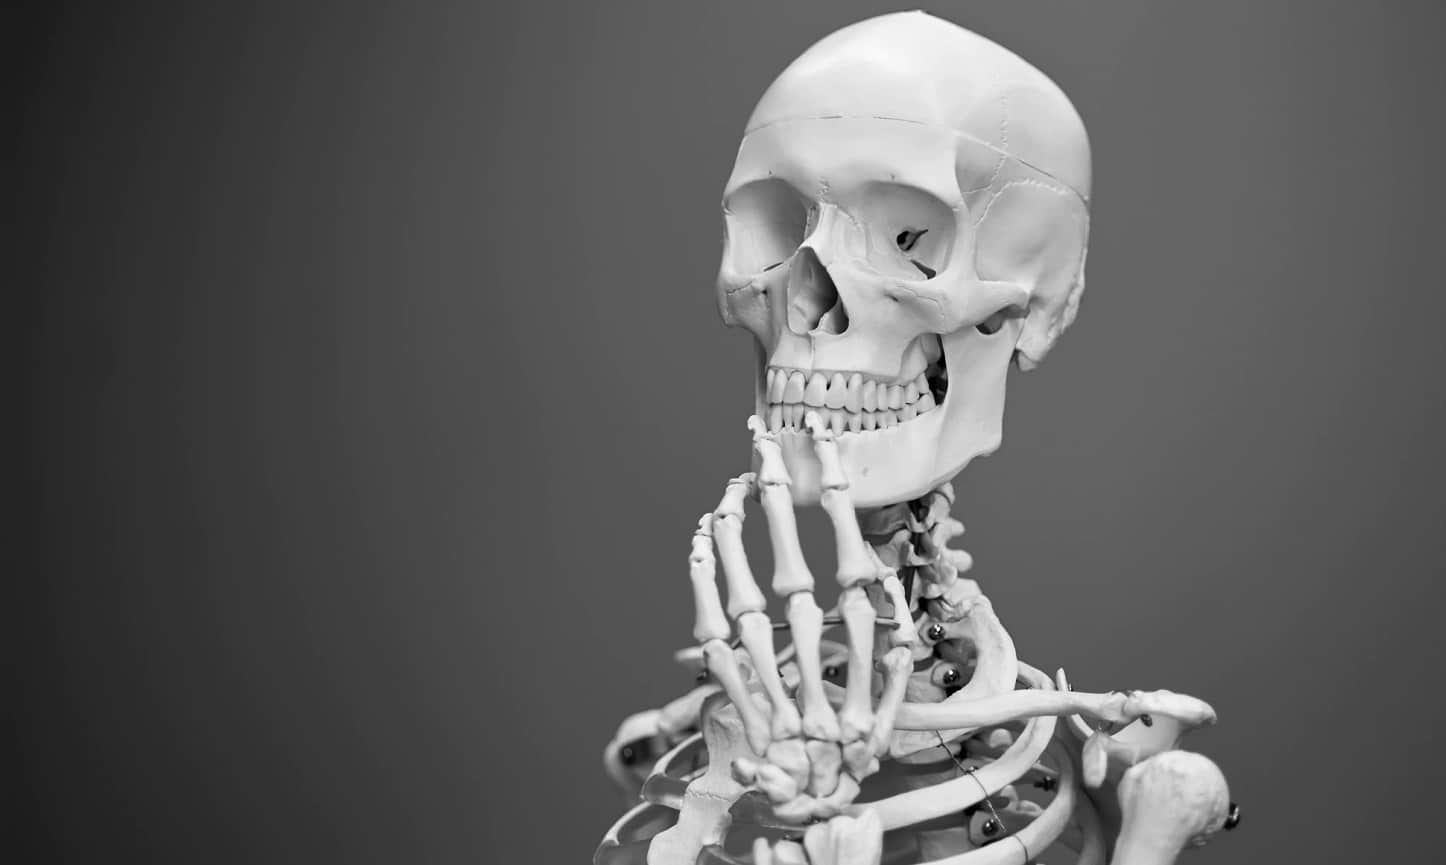 instagram bone trade with skeleton pondering both life and death